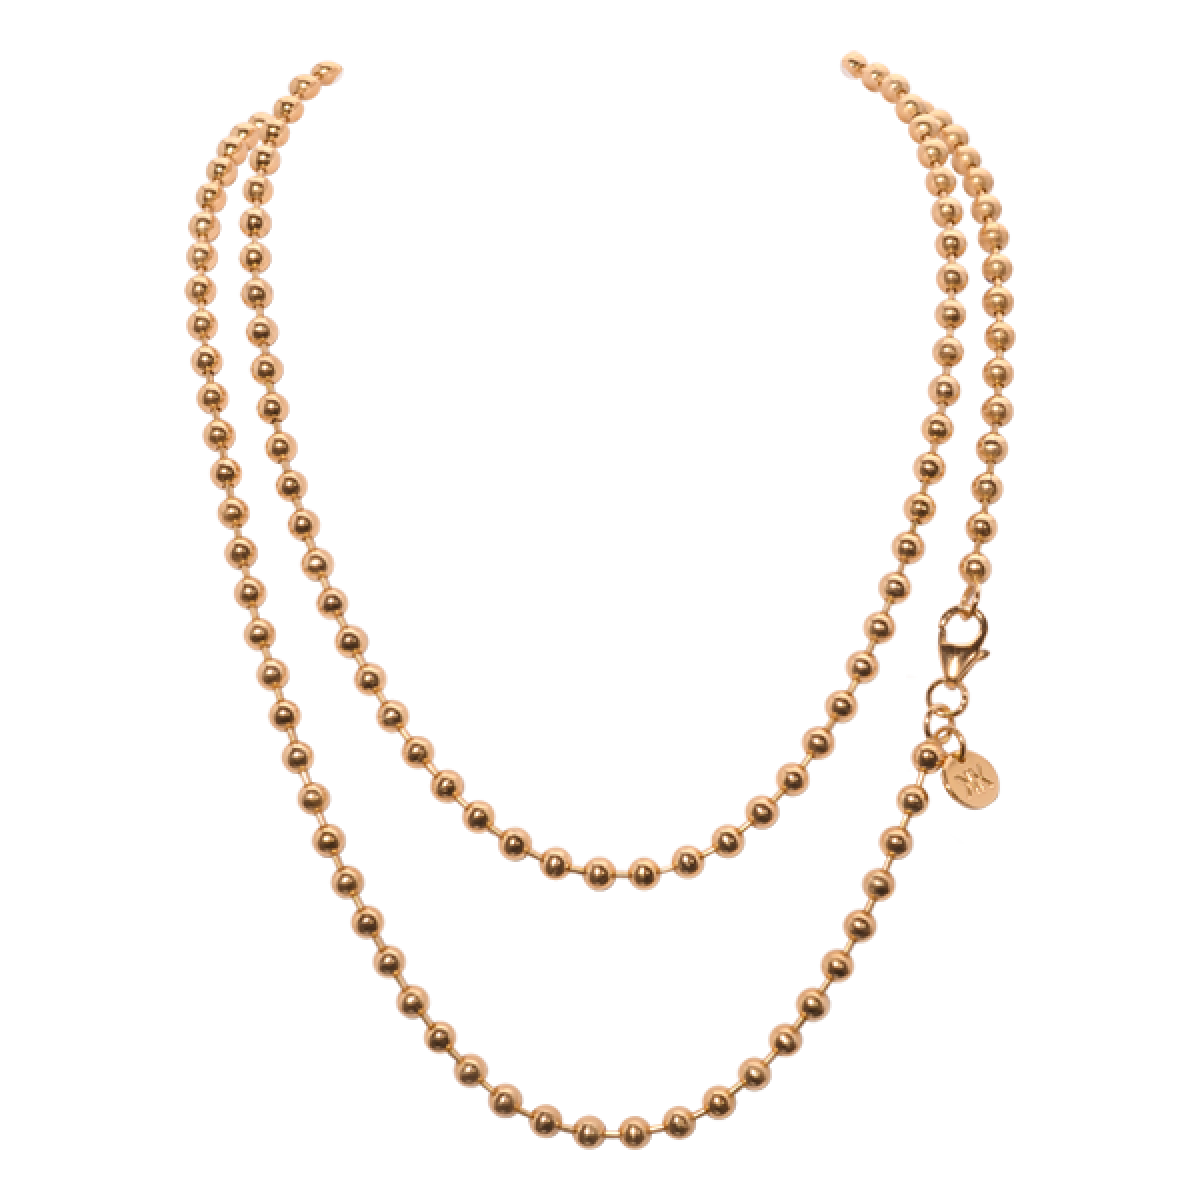 Jewellery Chain PNG HD - Chain HD PNG